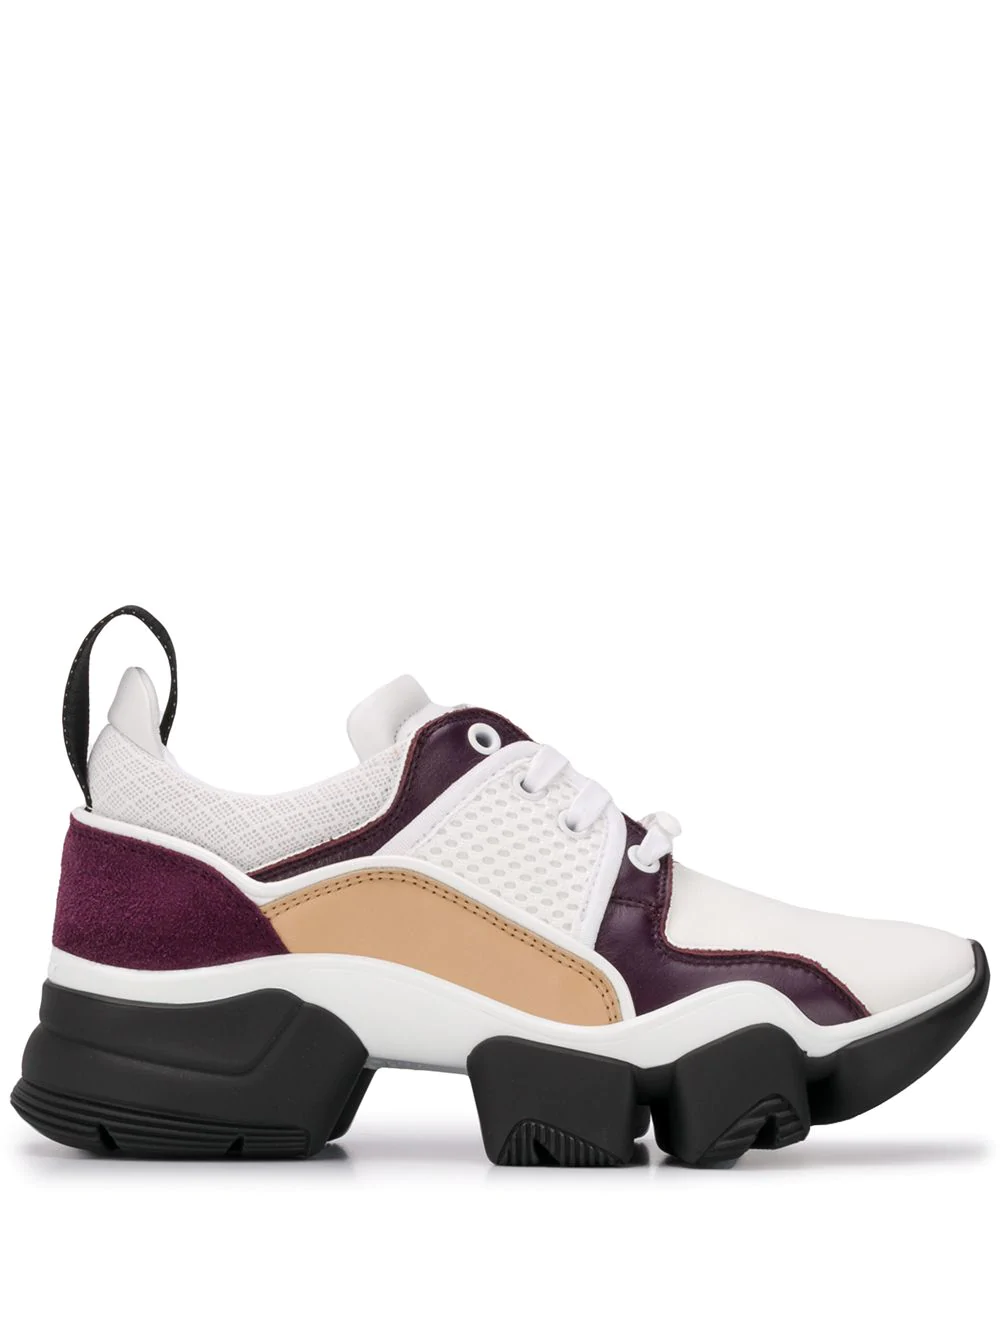 a51e00a25ef8 Givenchy Jaw Low-Top Leather Sneakers In White